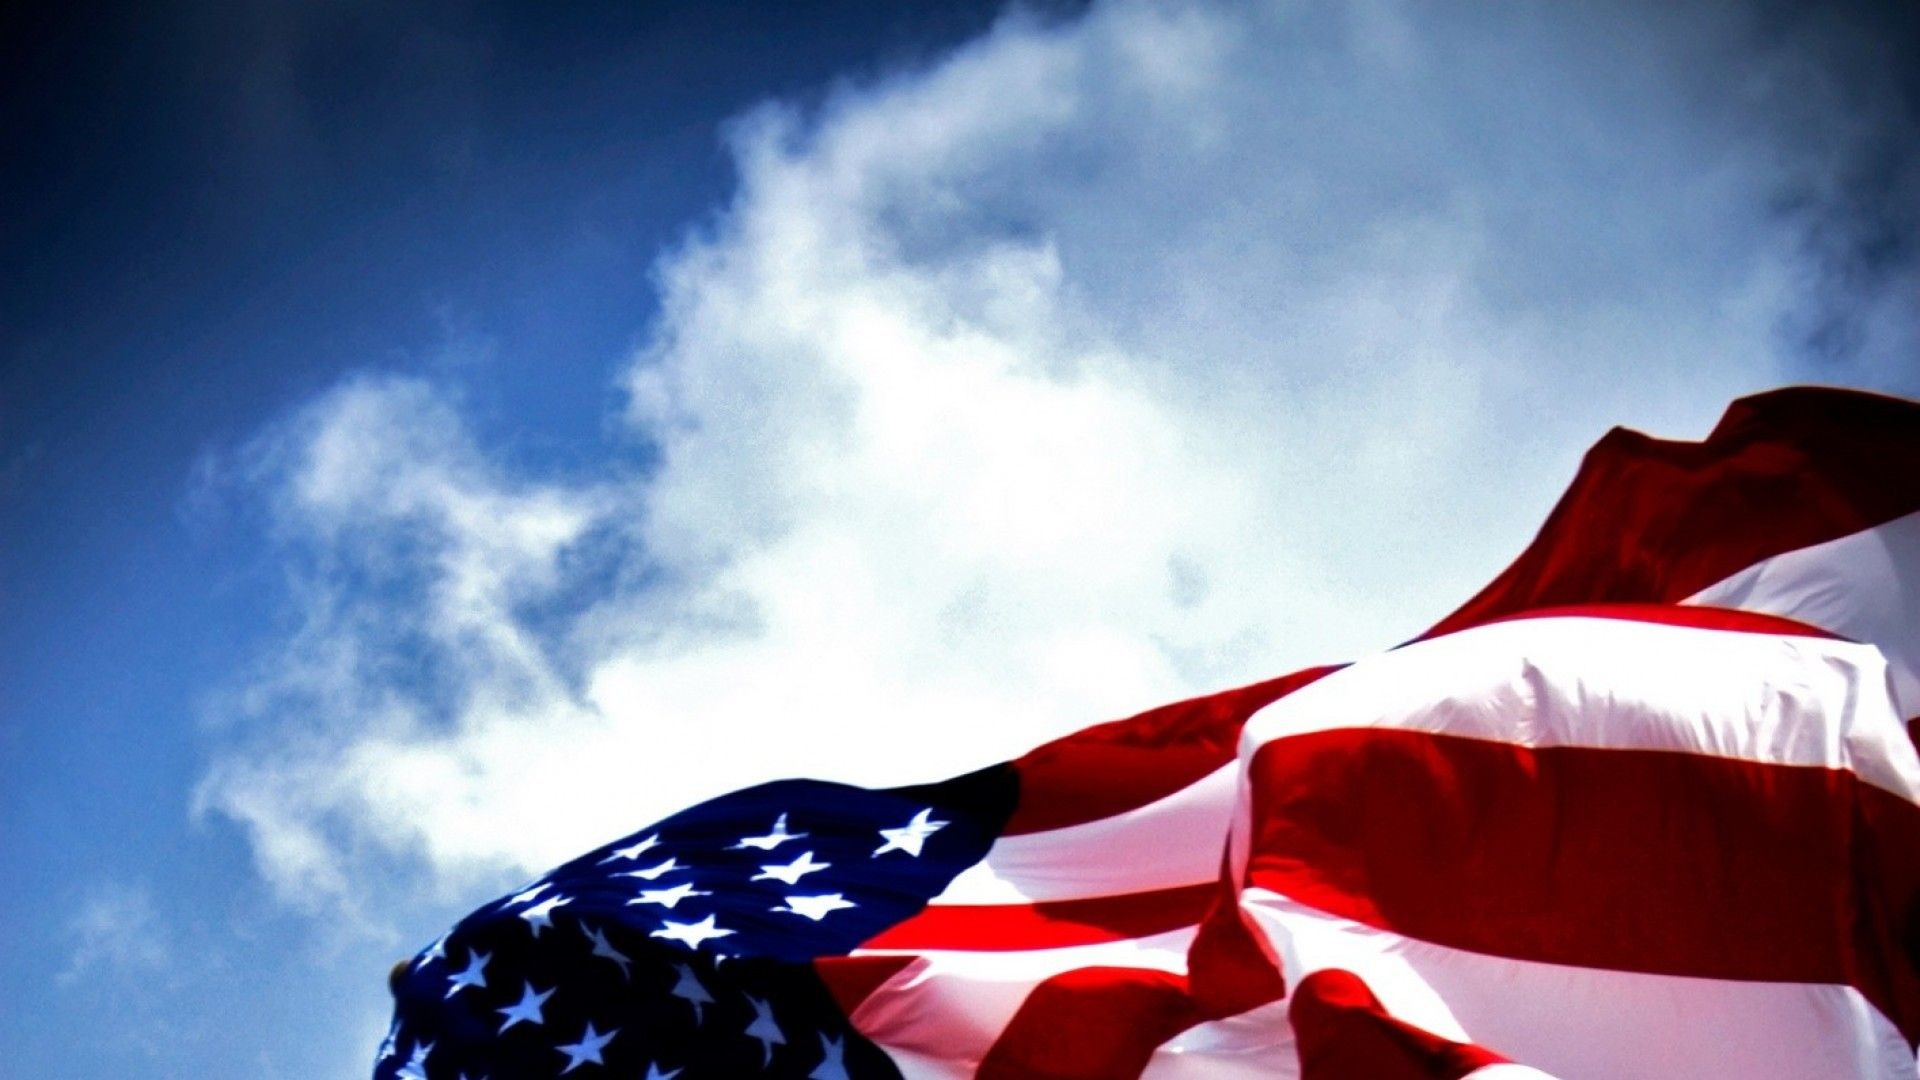 American Flag Pictures Wallpapers (35 Wallpapers)